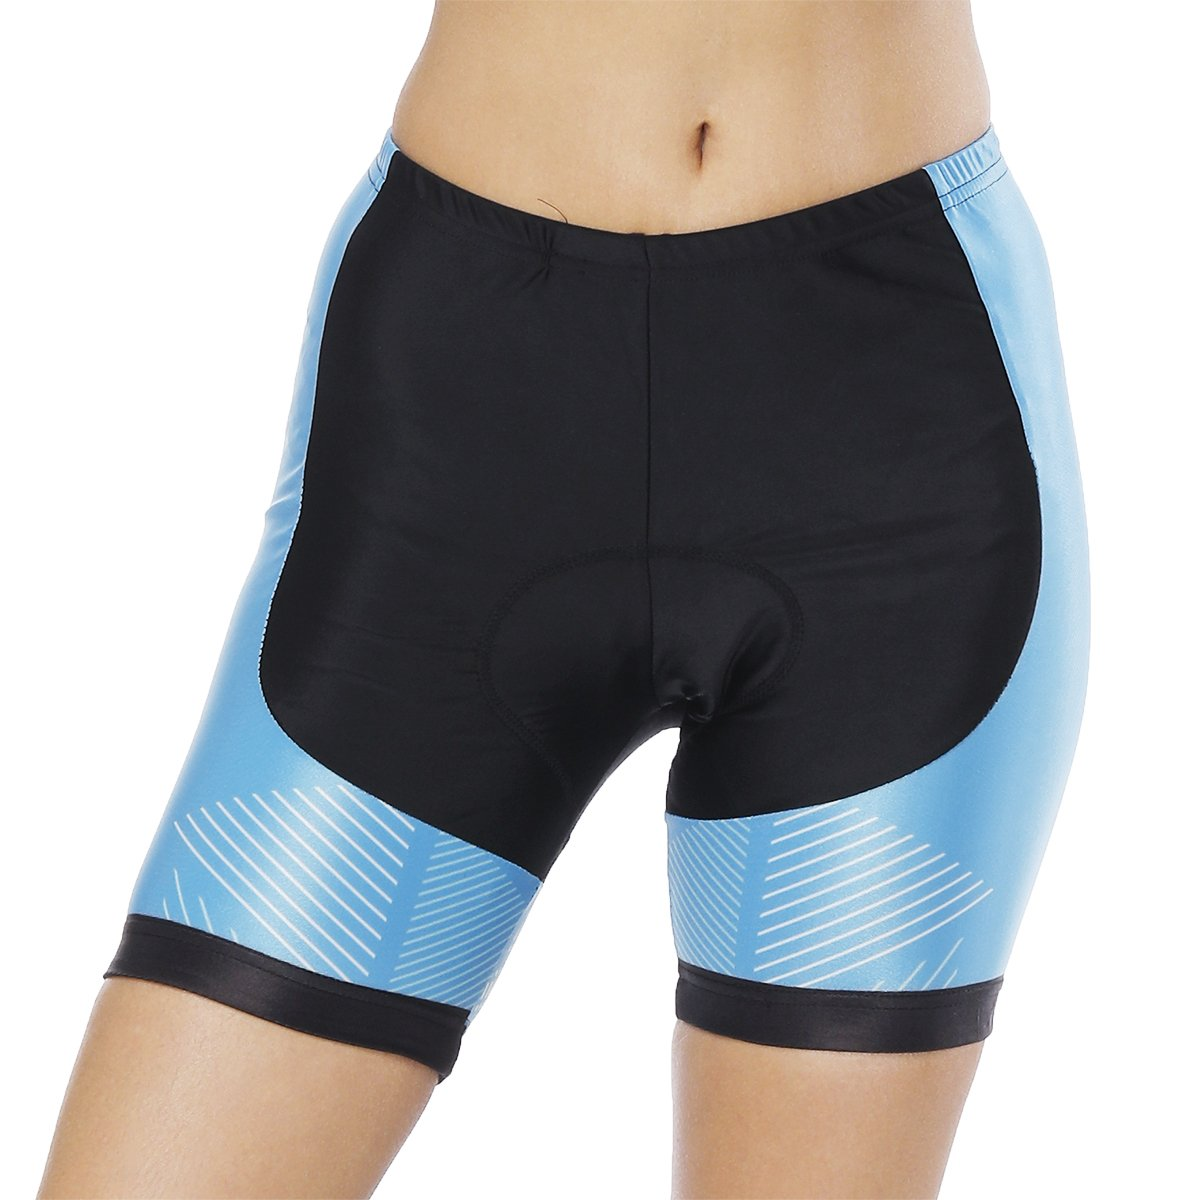 Womens Bike Shorts for Cycling with 3D Padded Pink Ride Women Cycling Shorts Blue S